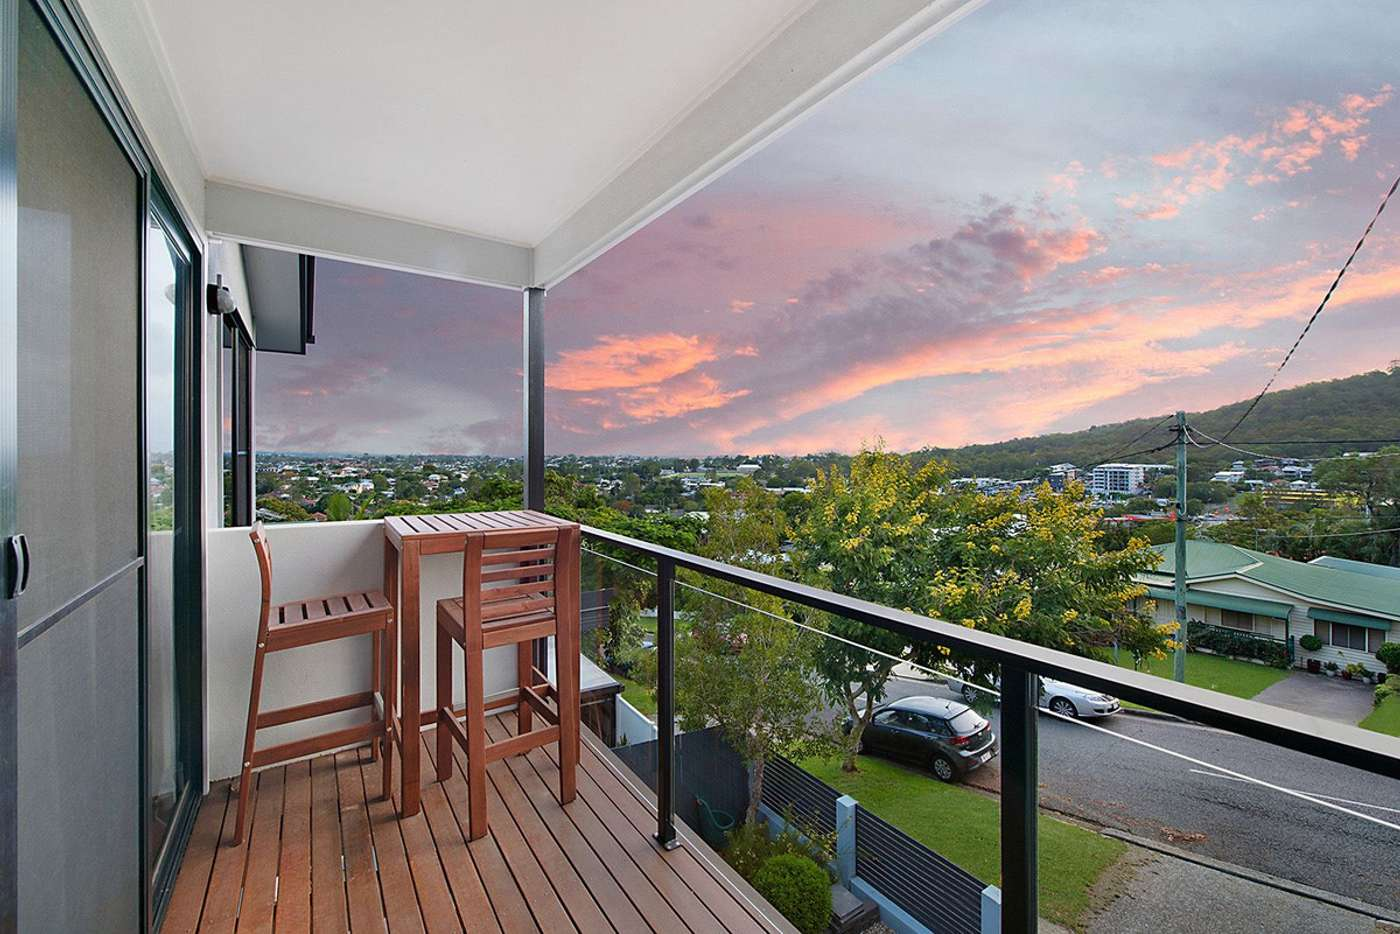 Main view of Homely house listing, 31 Grenfell Street, Mount Gravatt East QLD 4122